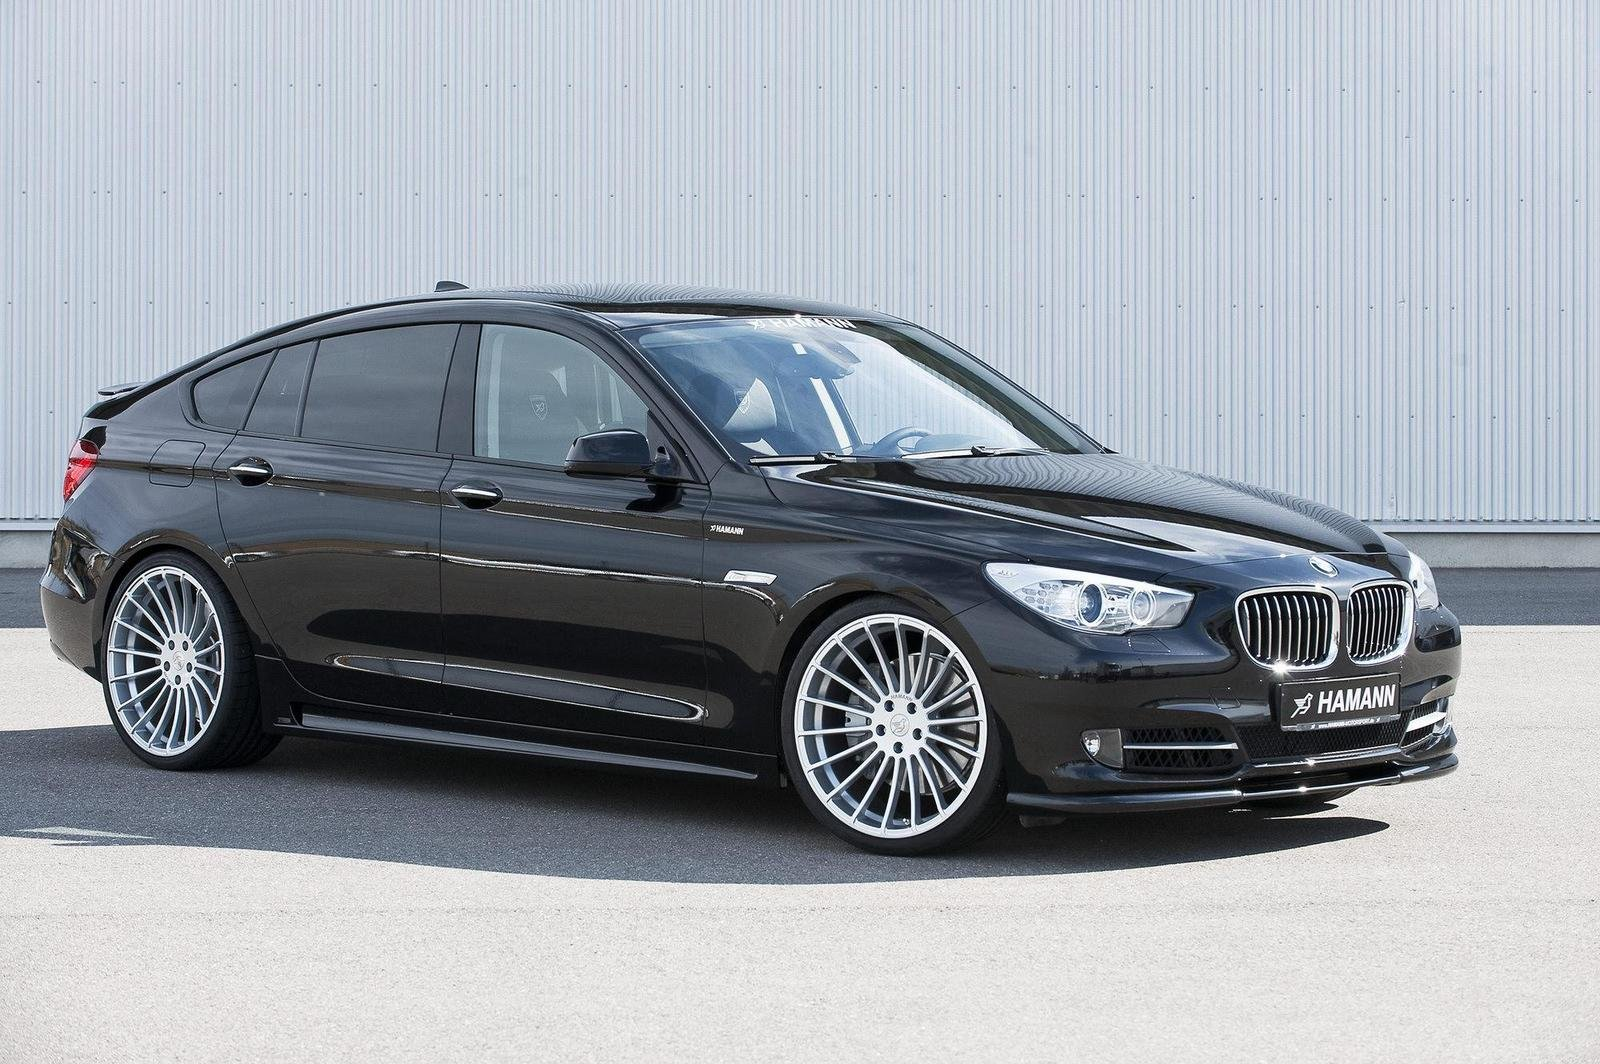 Bmw 5 Series Gran Turismo Review Bmw 5 Series Gran Turismo By Hamann Review Top Speed